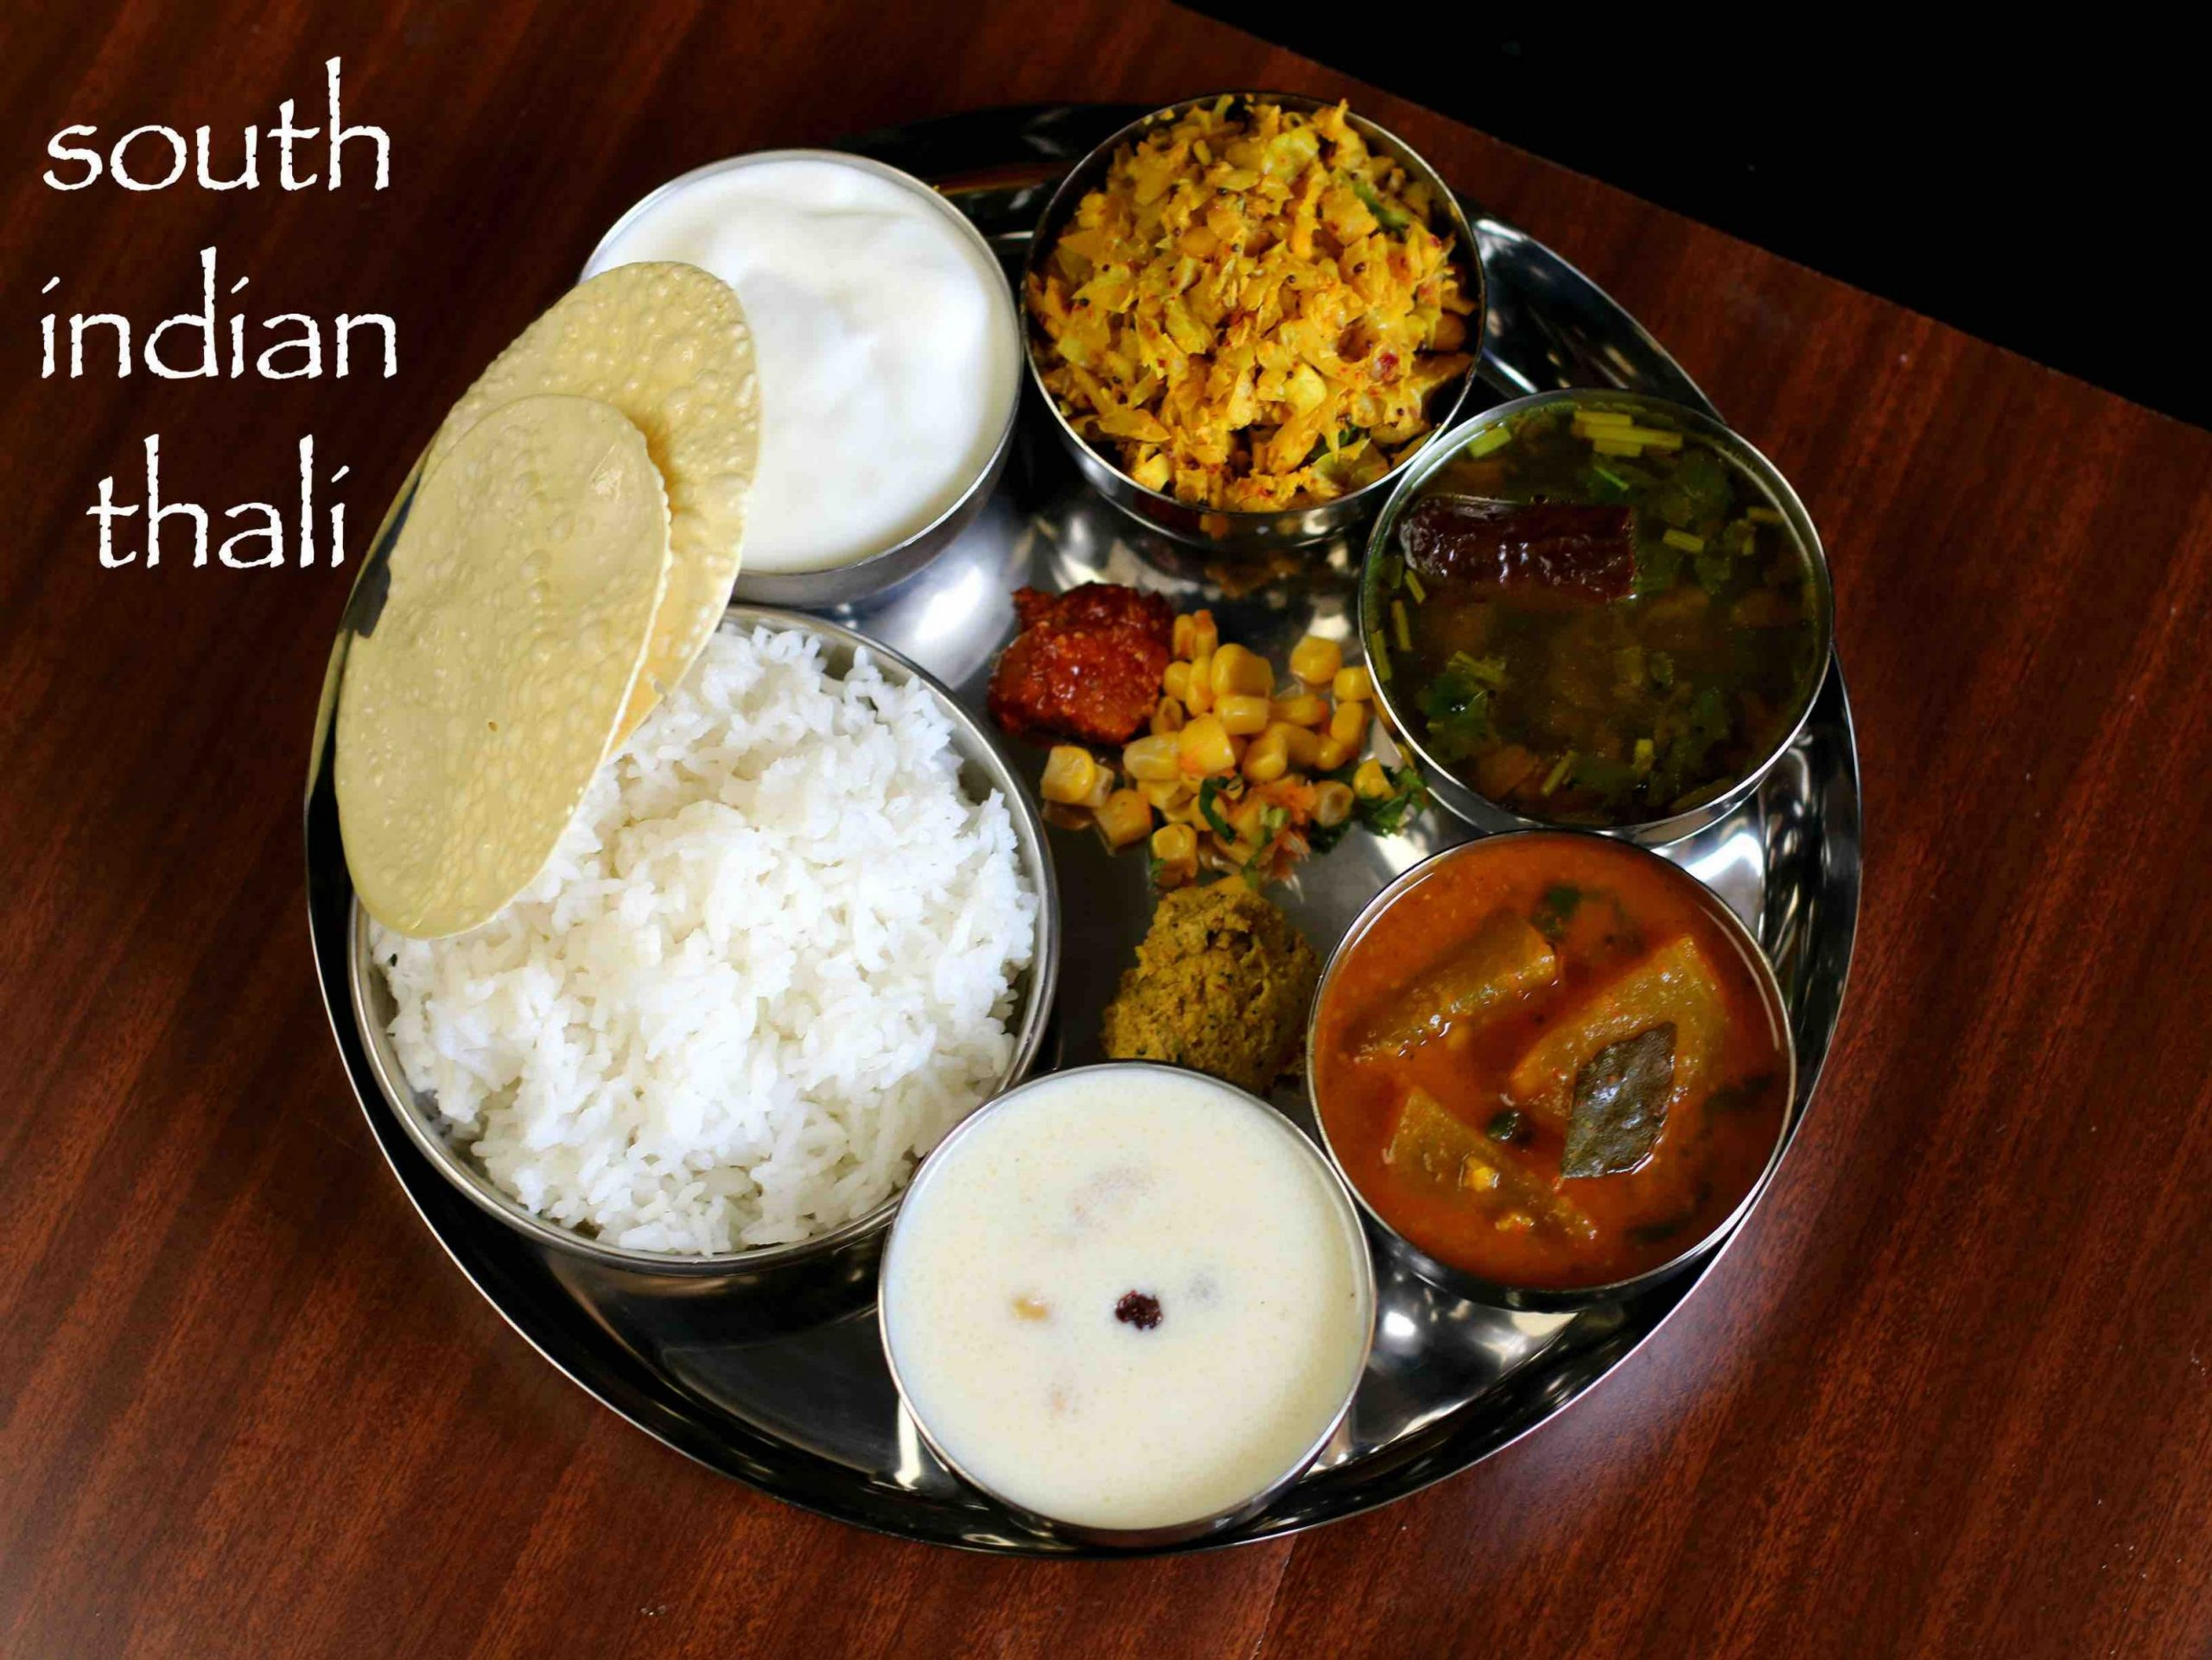 south indian thali recipe | veg south indian lunch menu ideas - Dinner Recipes South Indian